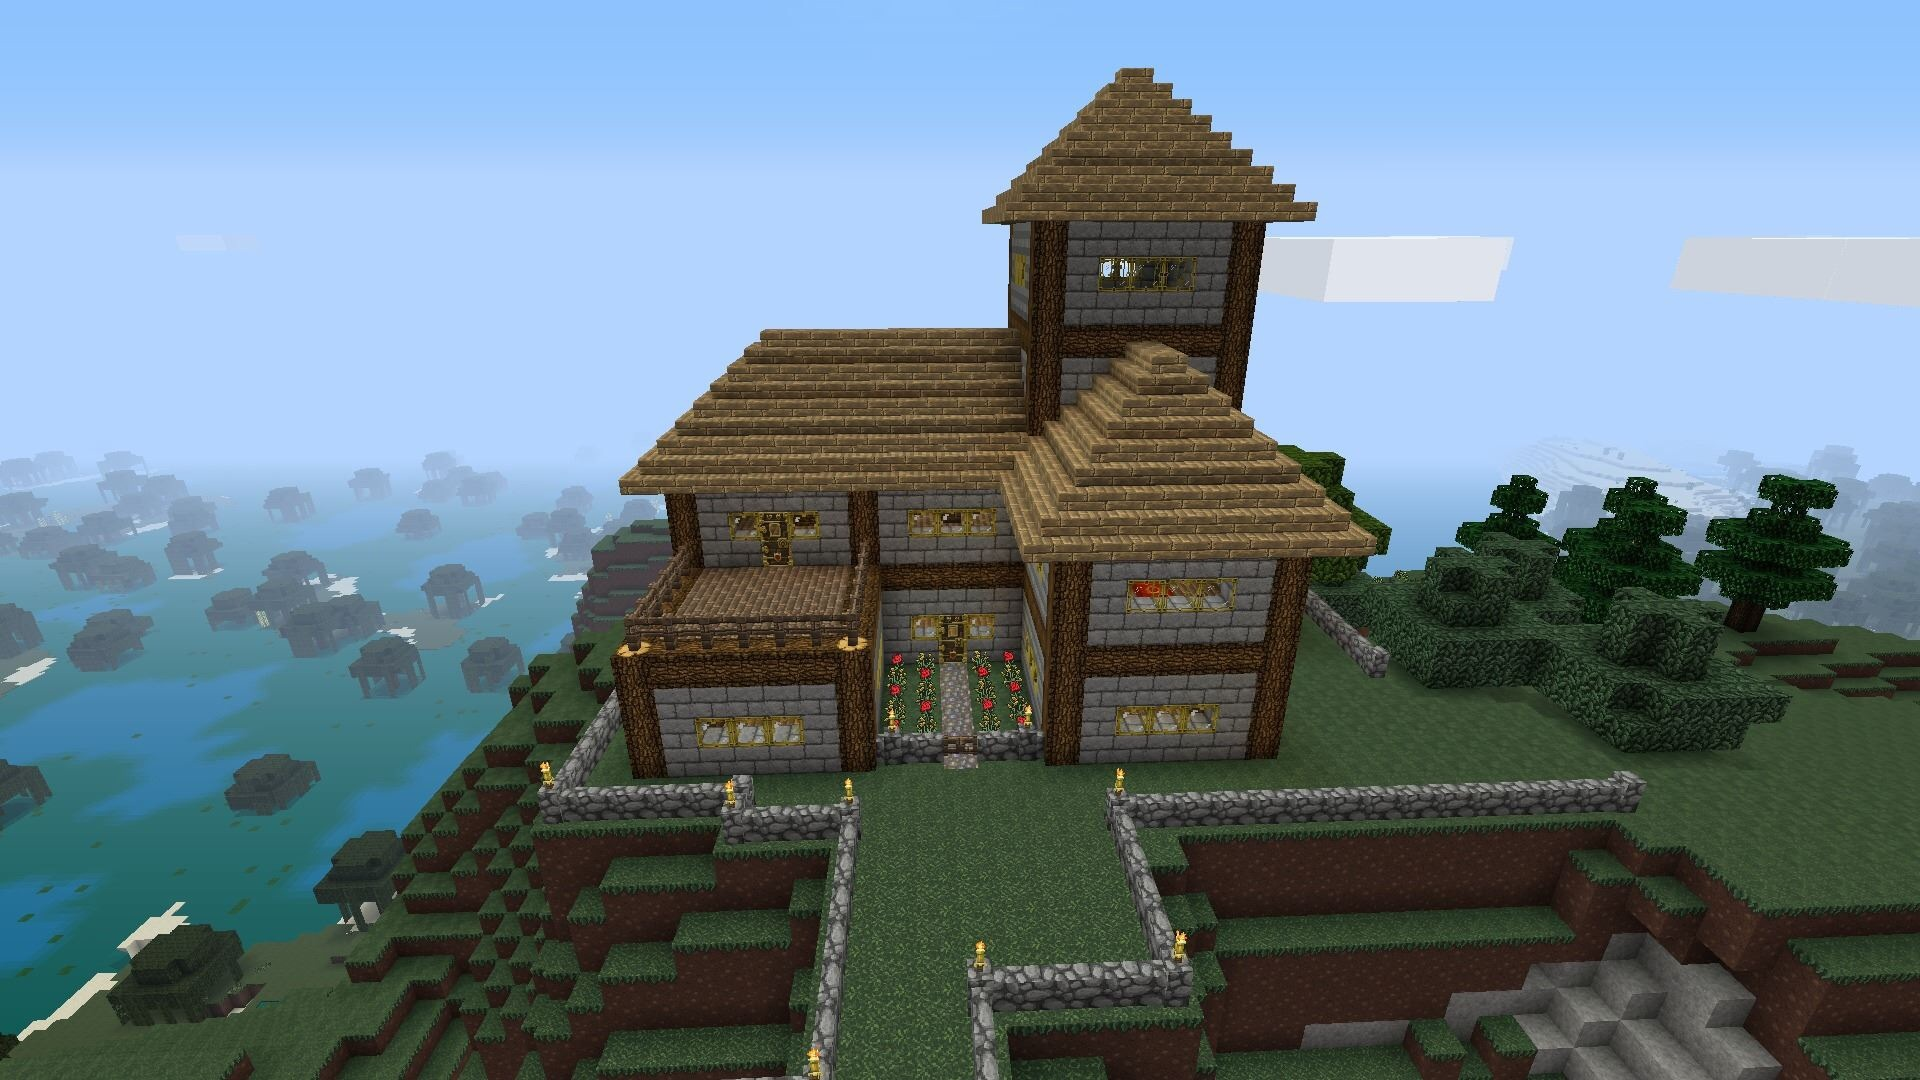 Minecraft survival house alt versio on ps4 by mr foxhound for Minecraft maison design